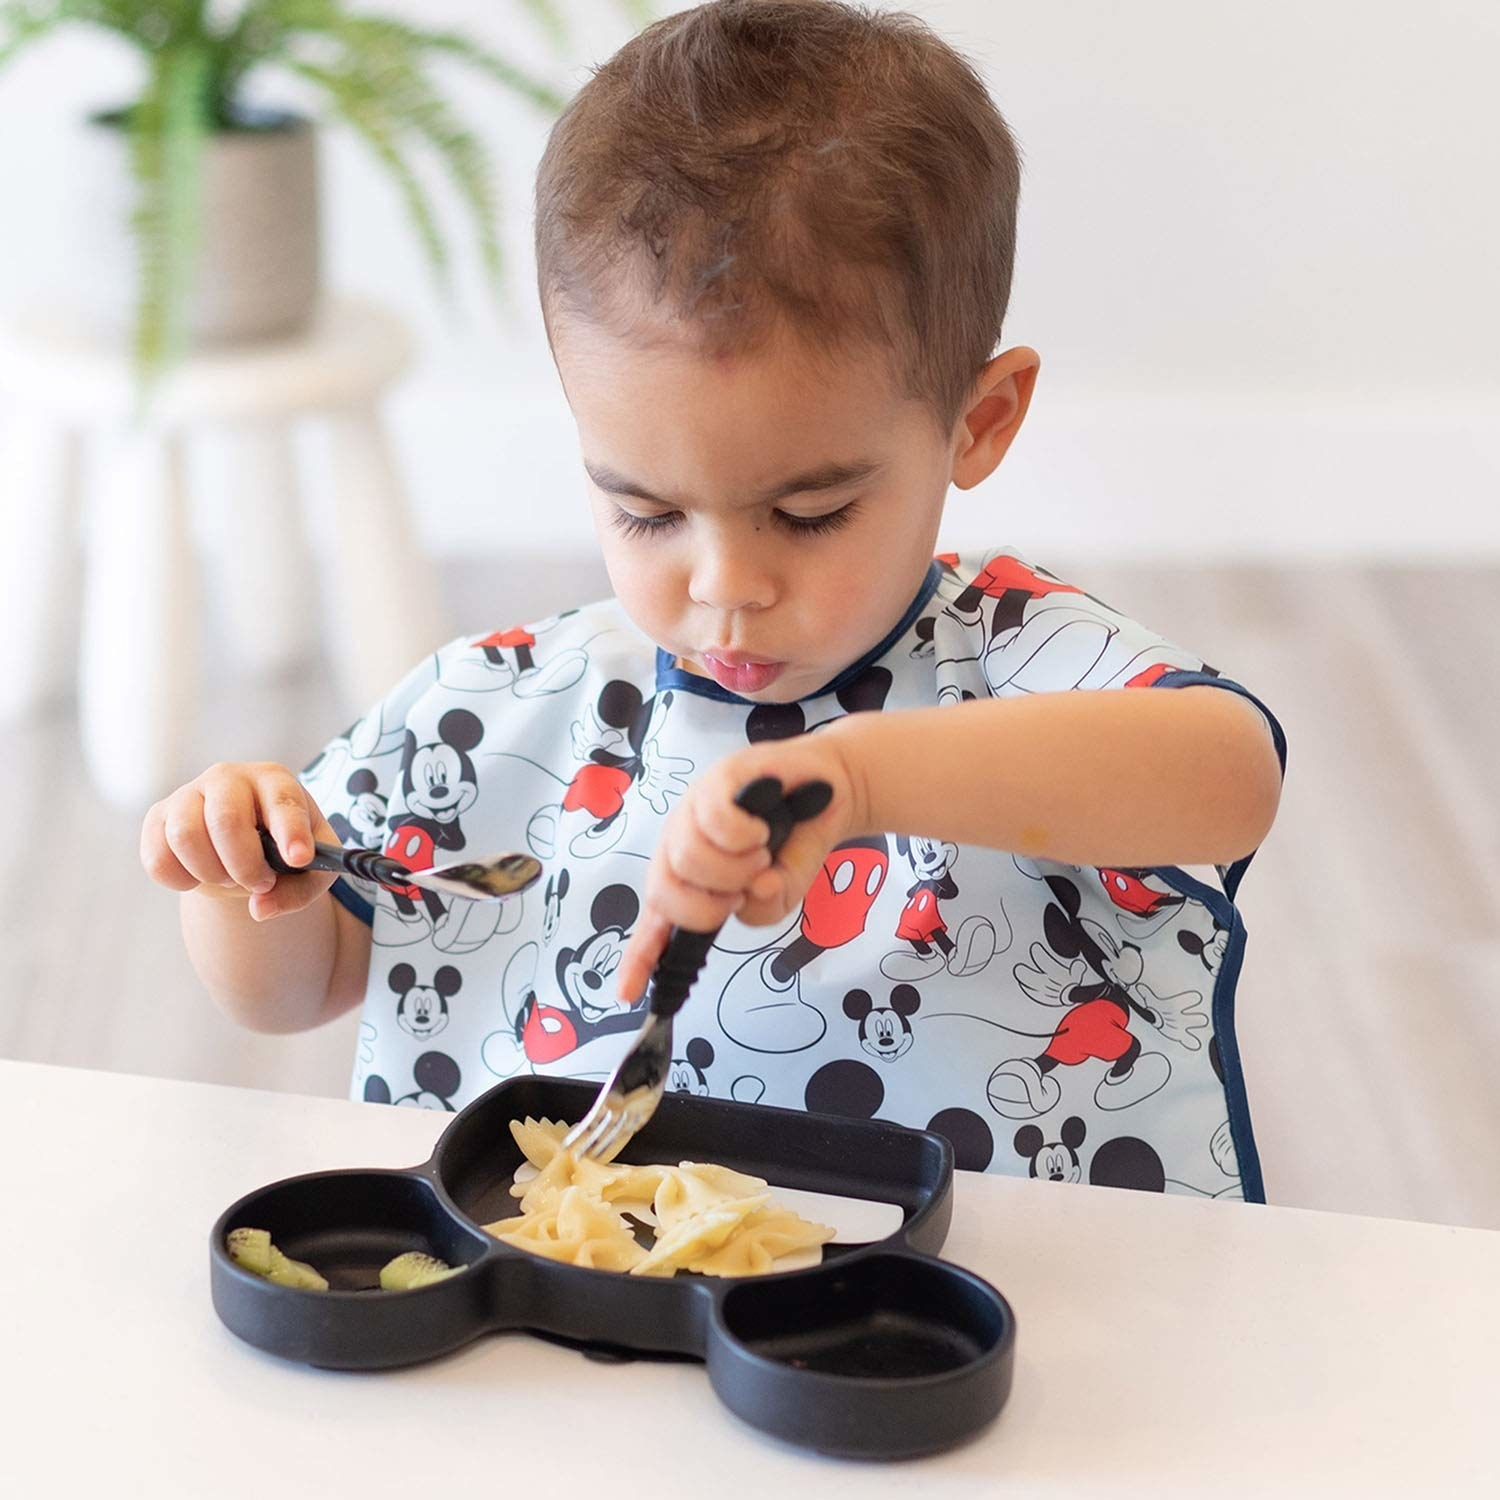 Child eating while wearing tee style smock with short sleeves and food-catching pocket in center